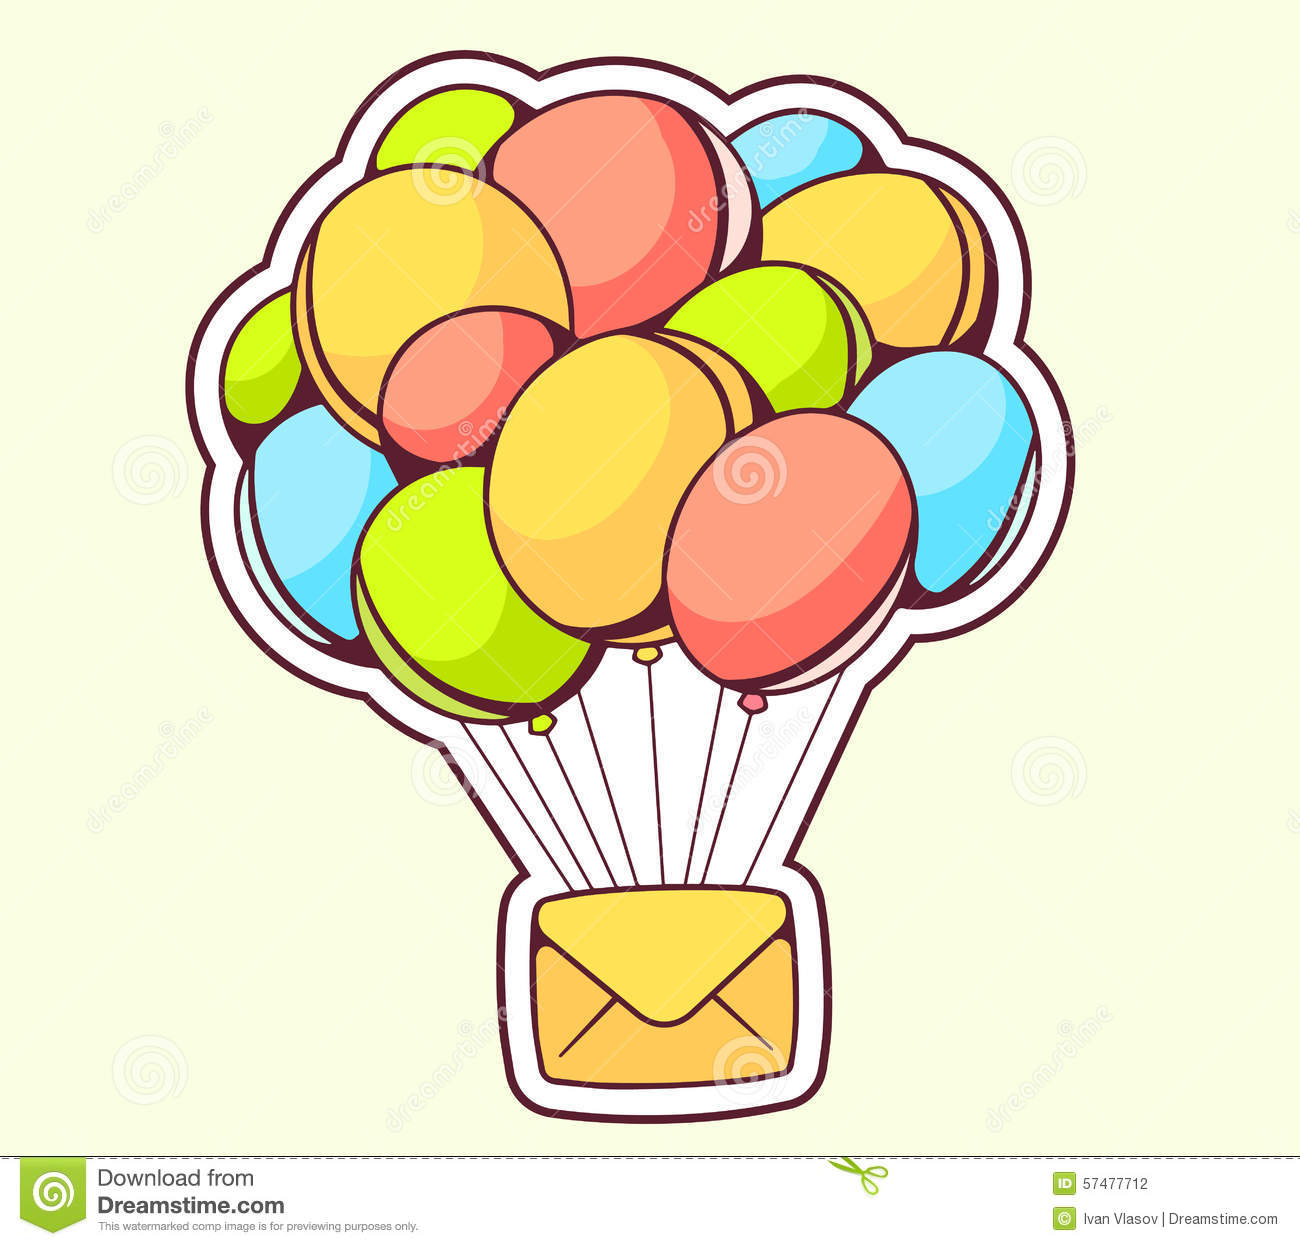 Vector Illustration Of Yellow Envelope Flying On Color Balloons.